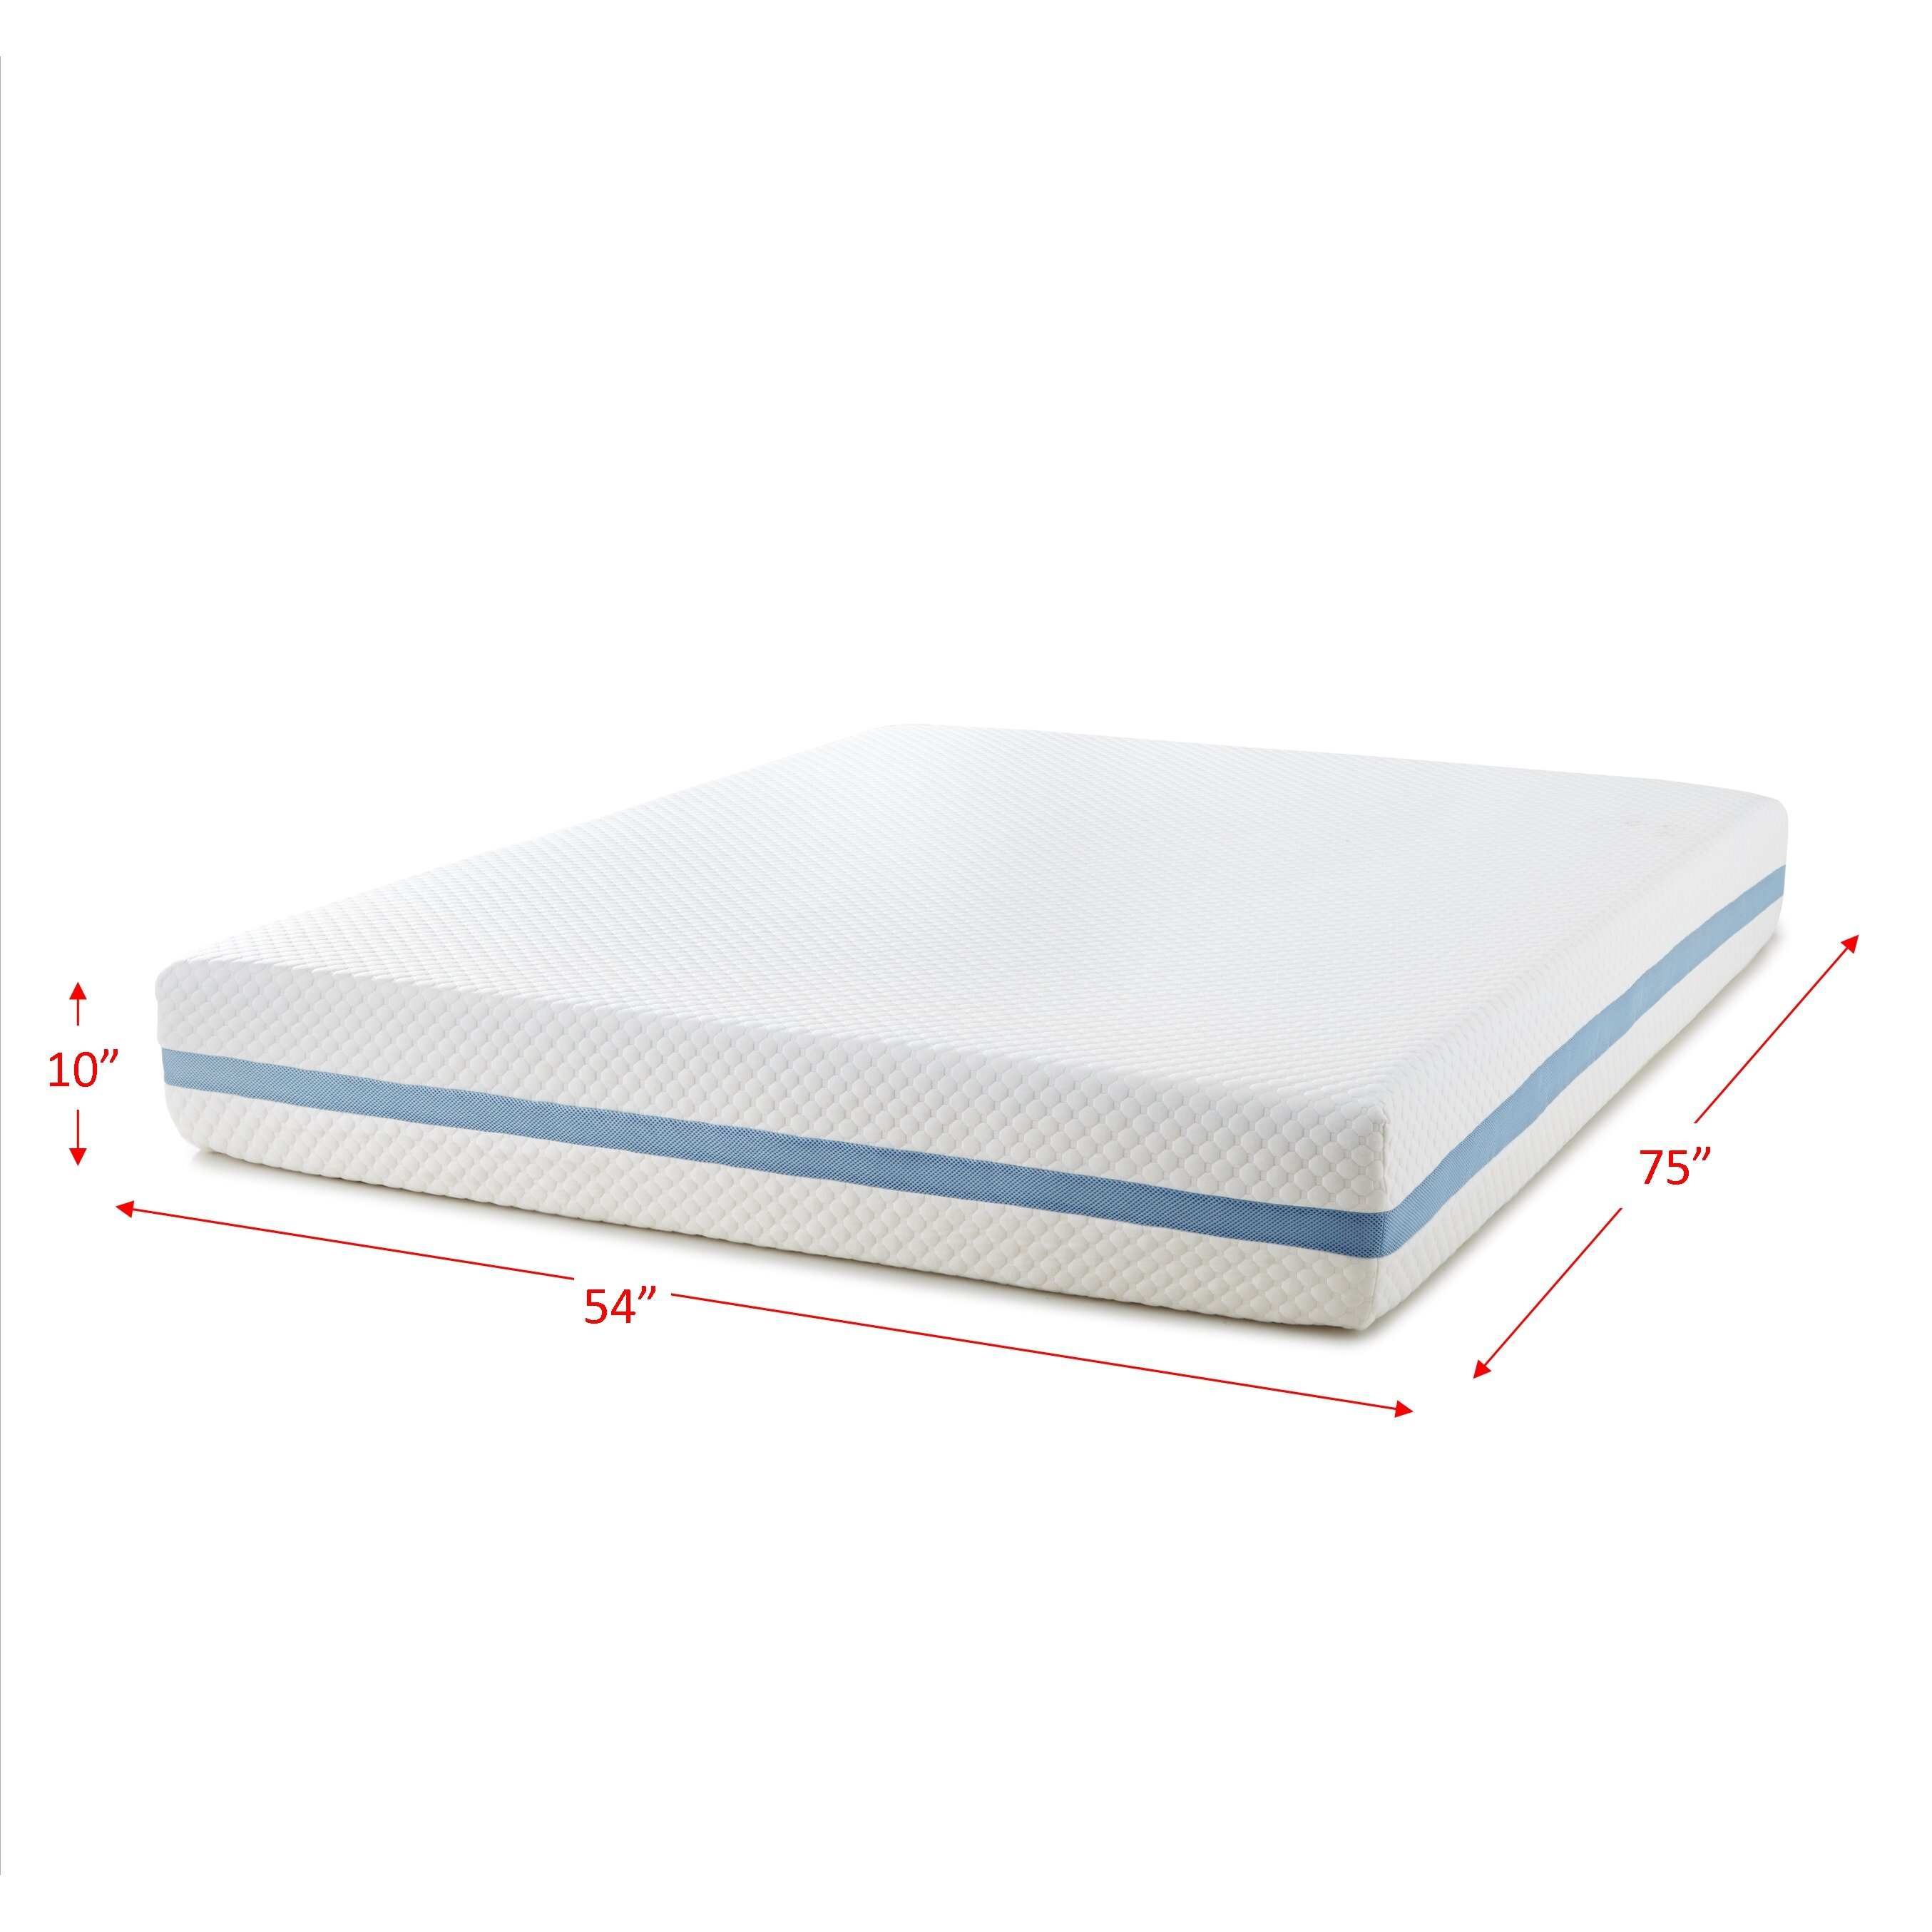 Simple sleep simple gel memory foam mattress wayfair Mattress sale memory foam